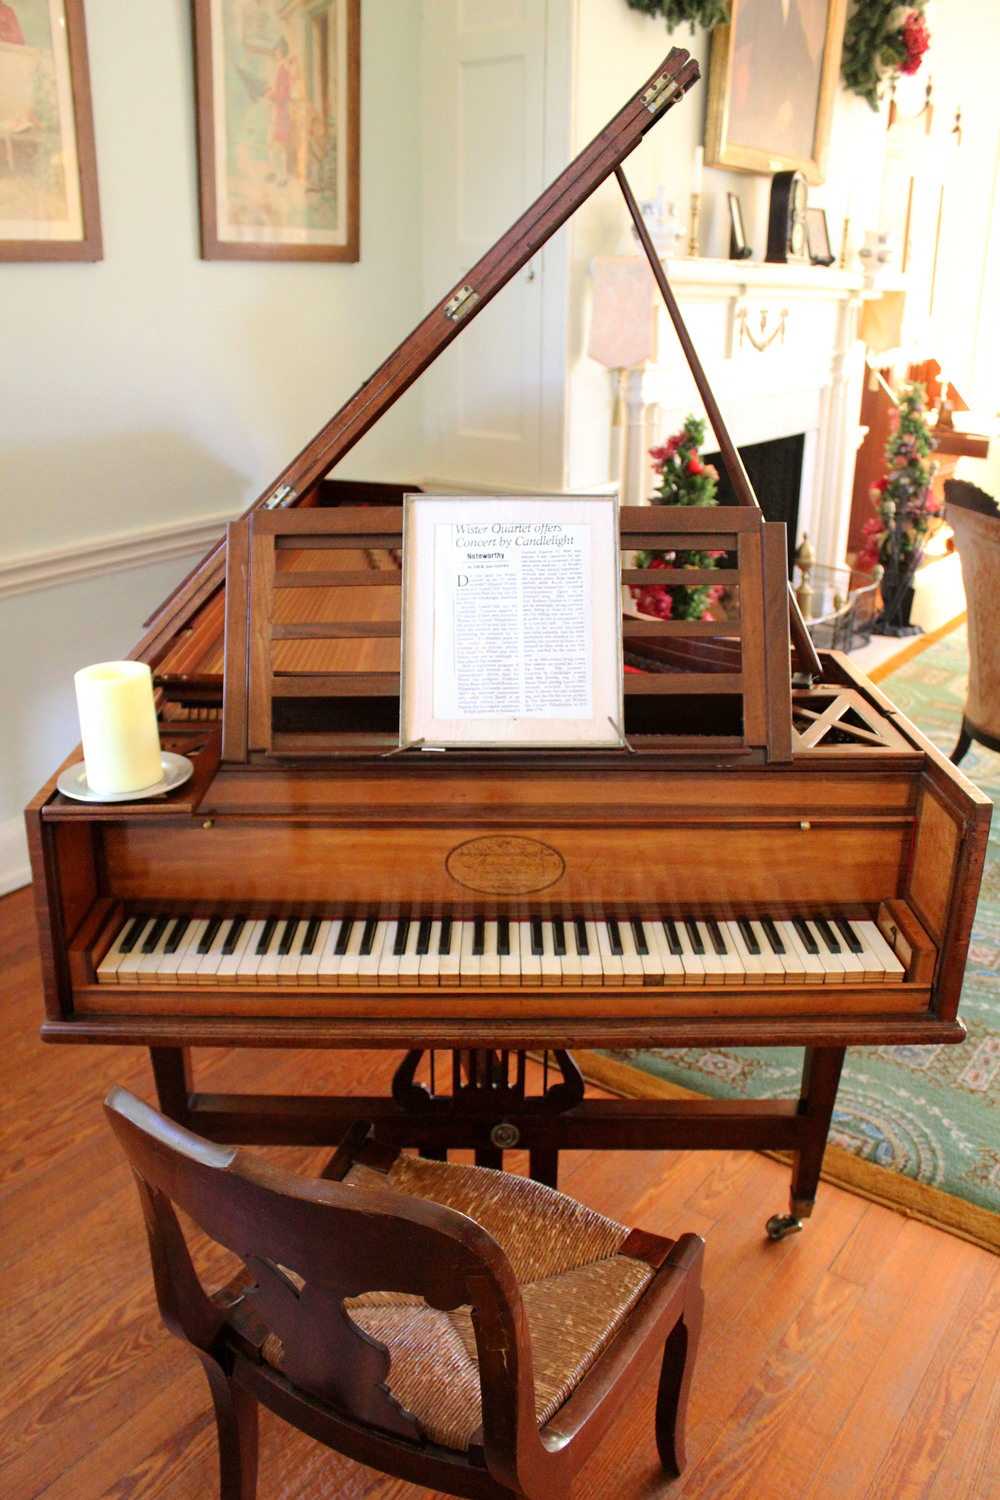 1808 pianoforte.  Music was part of life at Laurel Hill; and continues today through the annual Concerts by Candlelight series.  Photo by Samantha Madera, 2012.